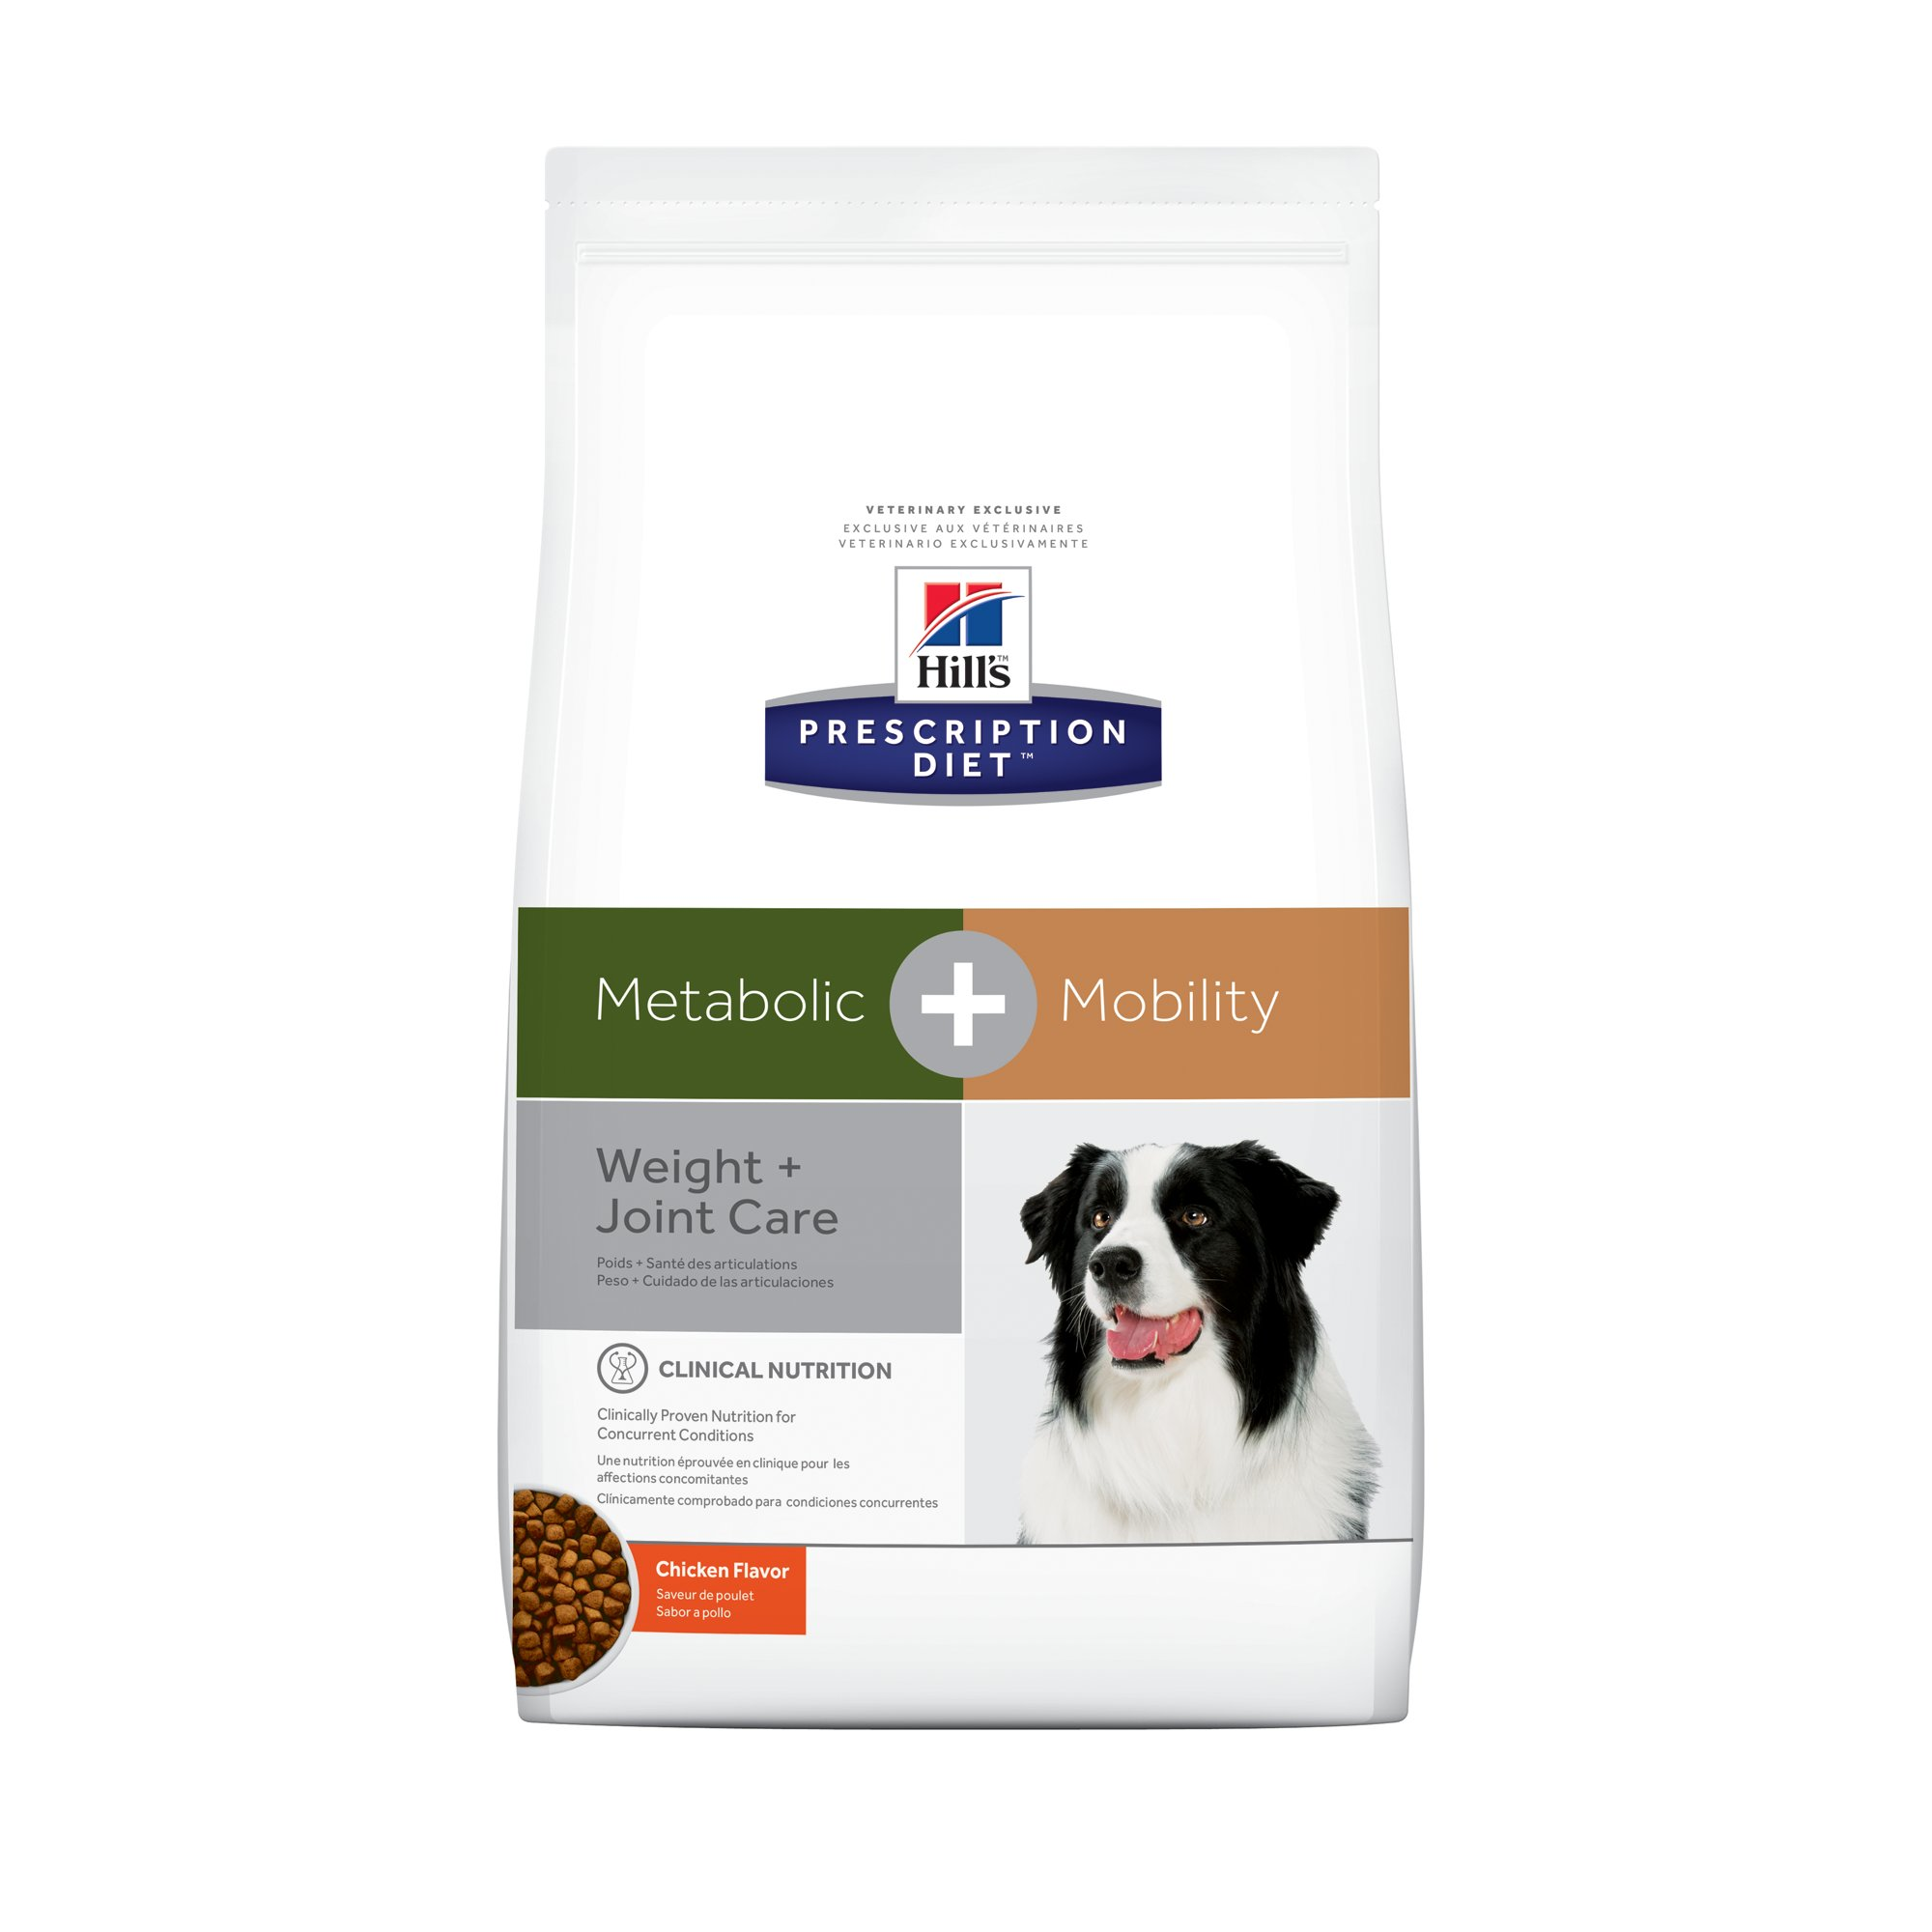 Prescription Diet Dog Food >> Hill's Prescription Diet Metabolic + Mobility, Weight ...